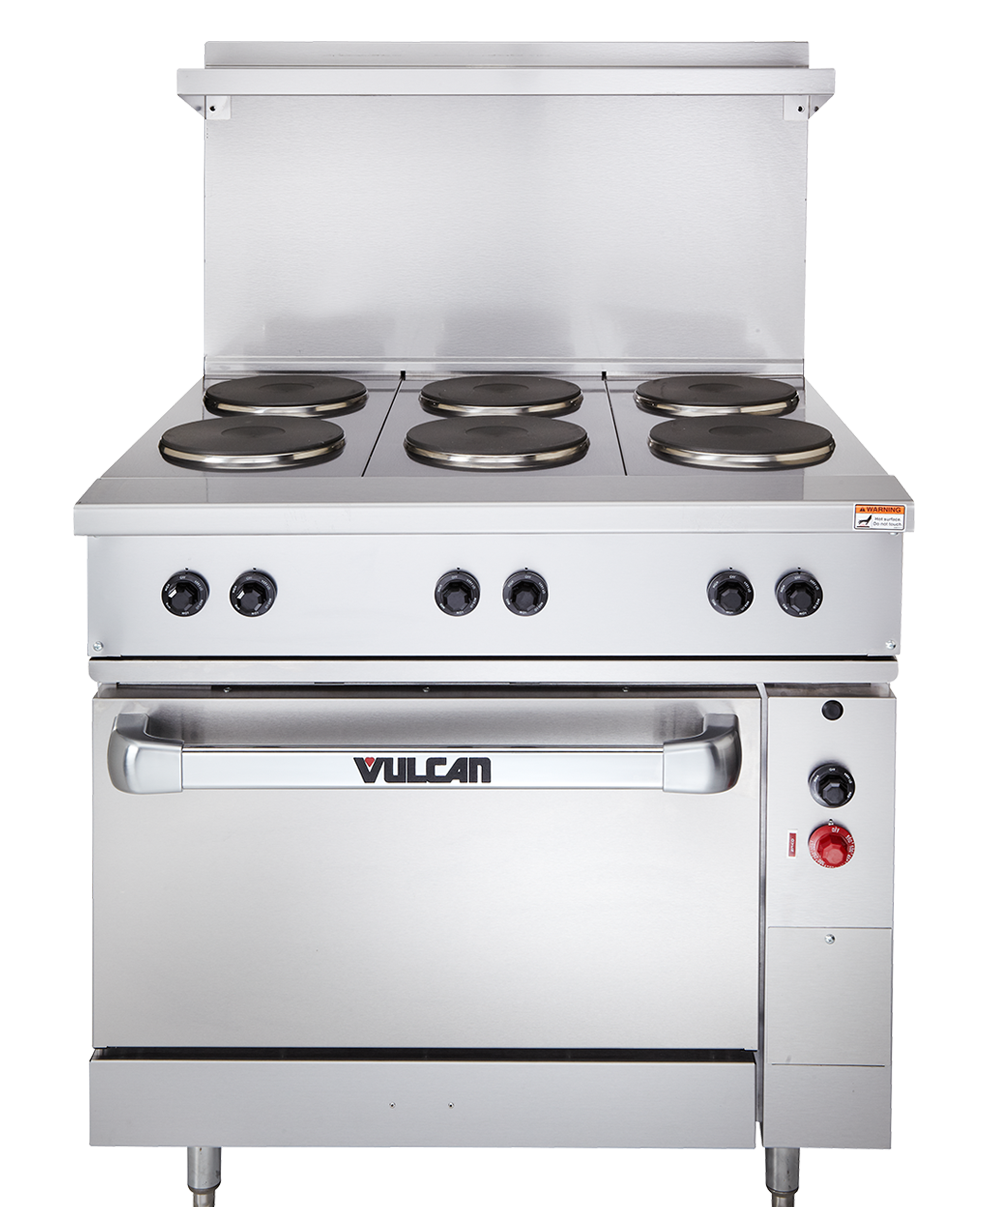 Vulcan Kitchen Appliances